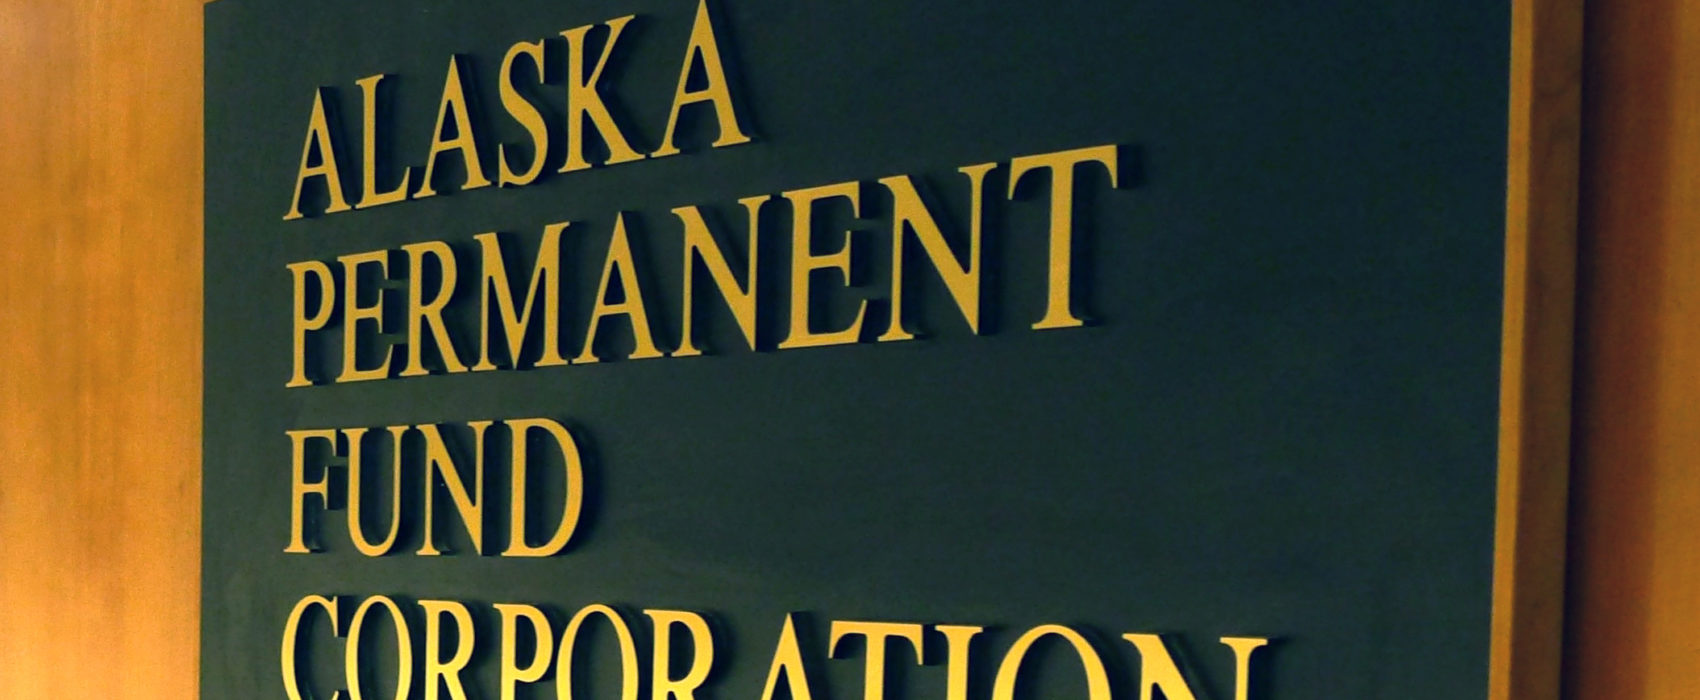 Alaska Permanent Fund Corporation sign, March 14, 2016.